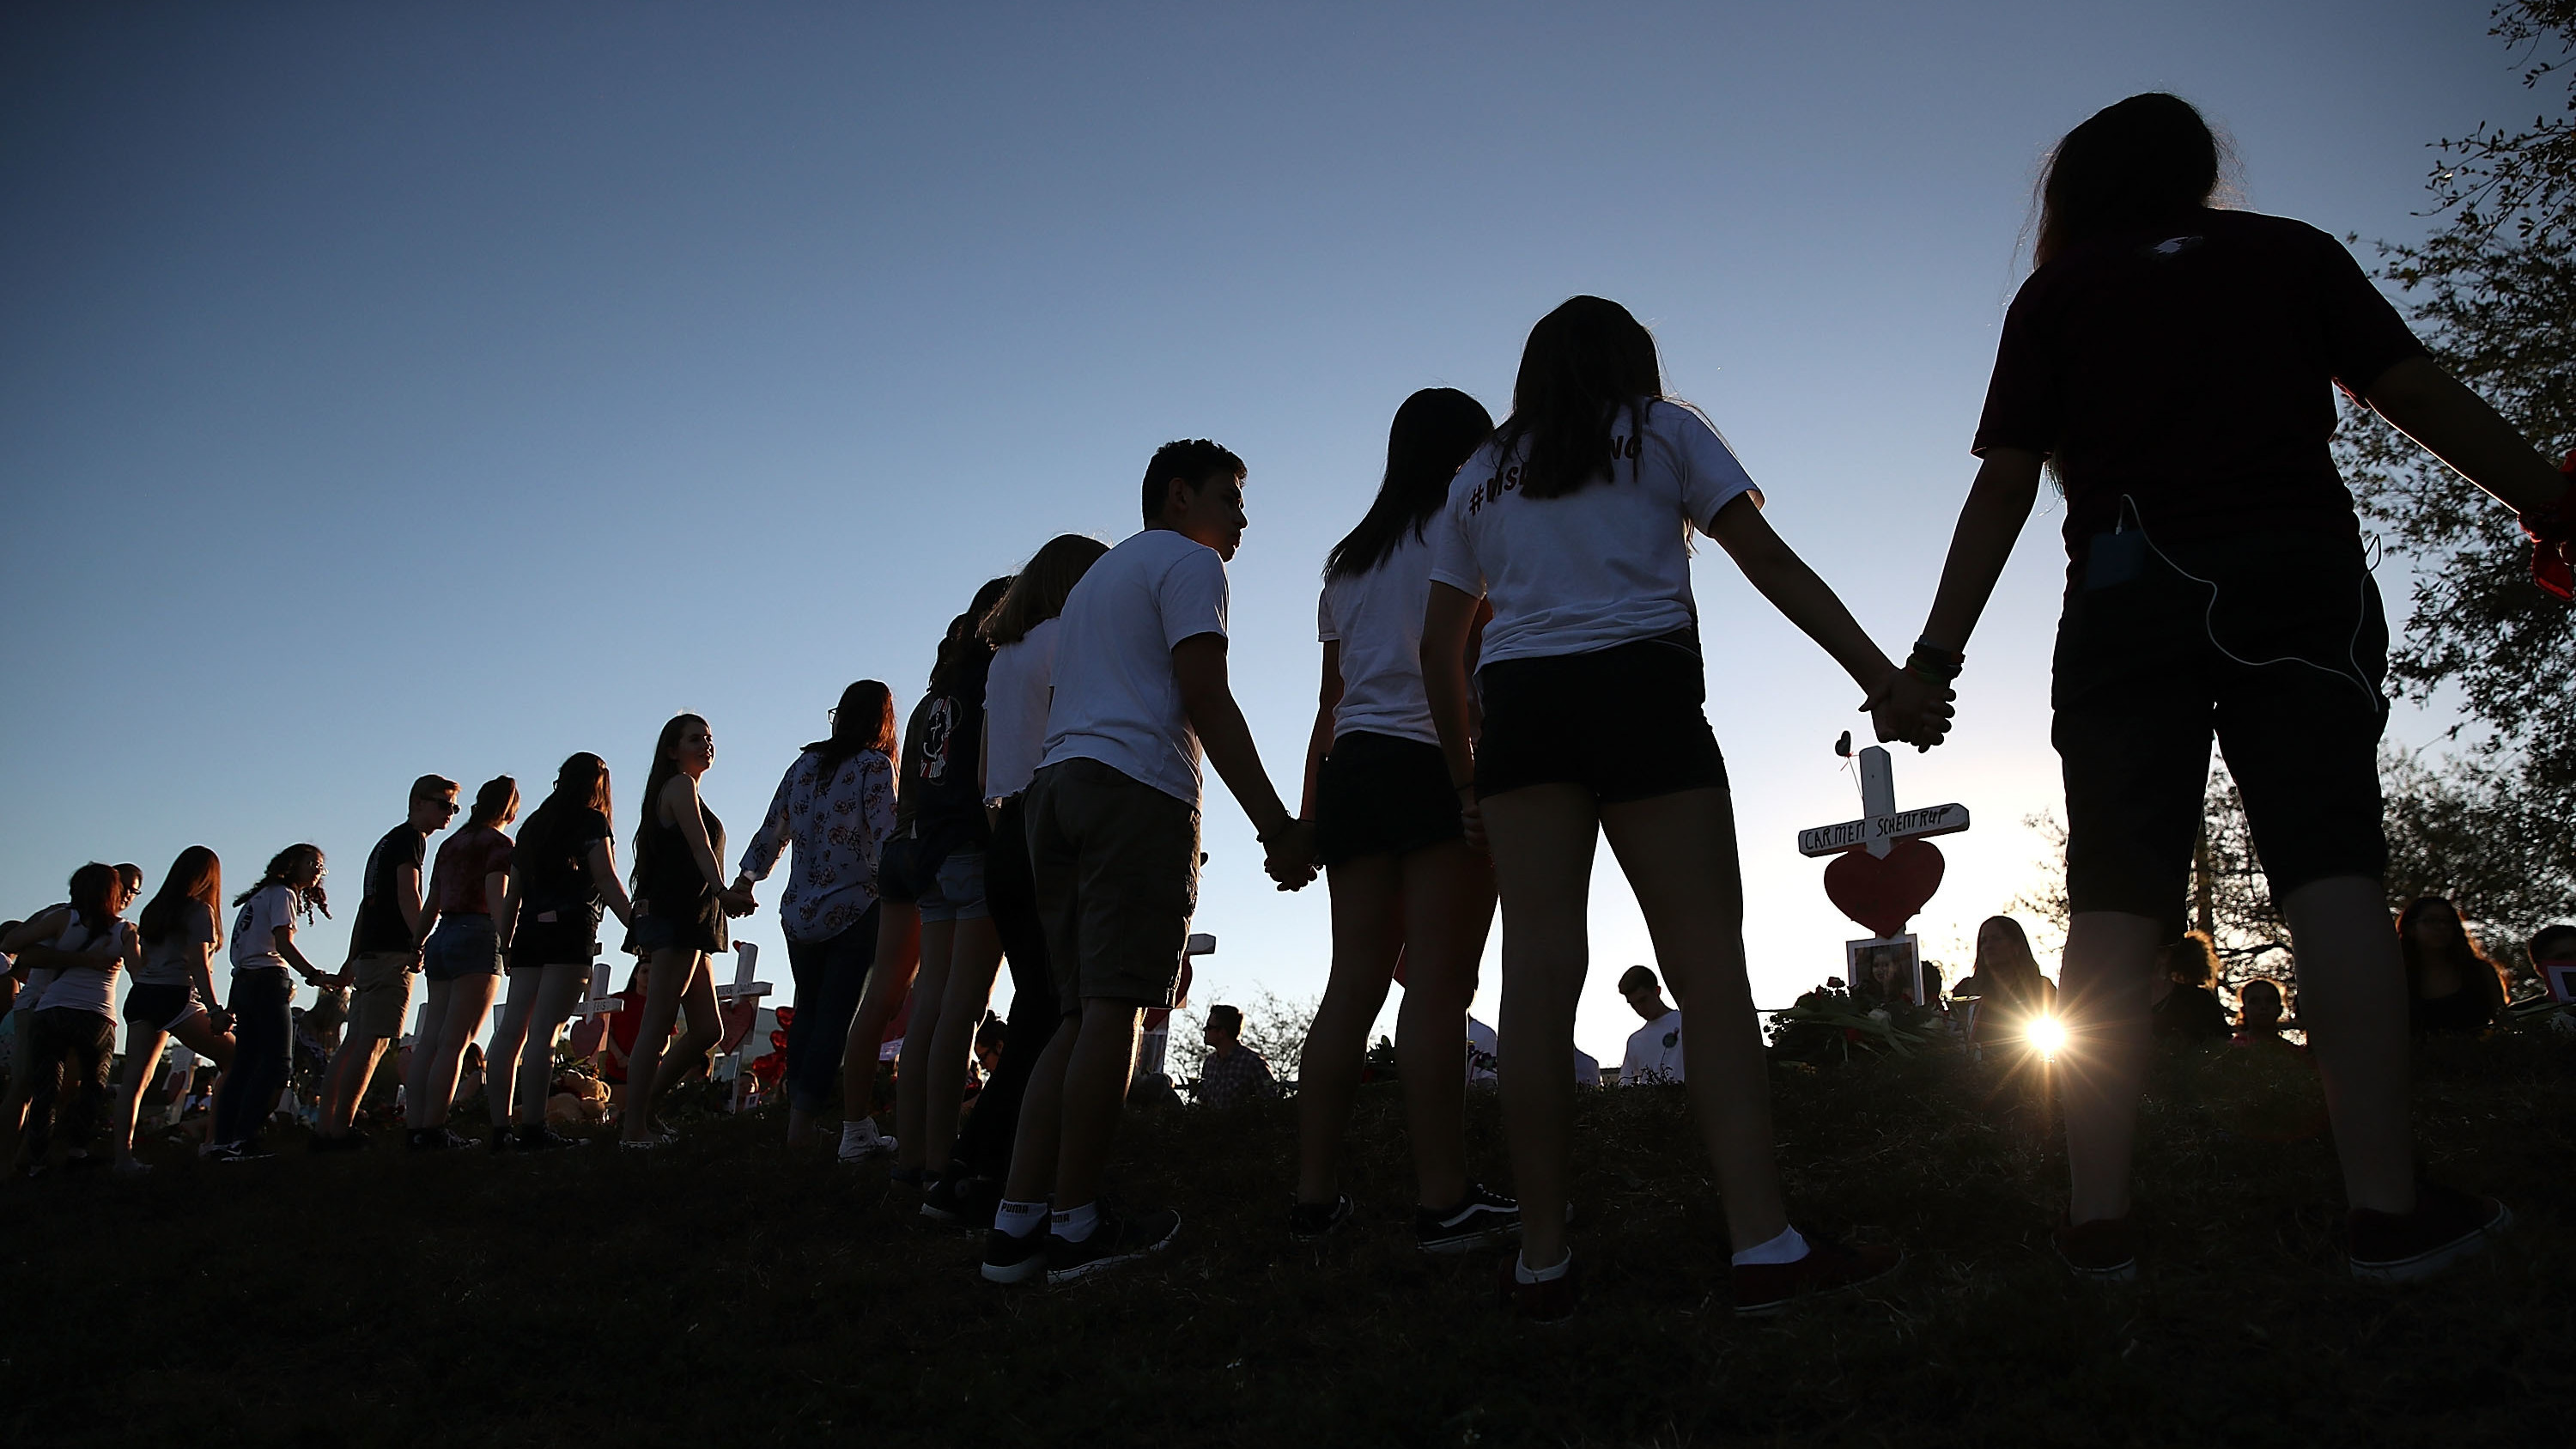 Students and family members hold hands around a makeshift memorial in front of Marjory Stoneman Douglas High School in Parkland, Fla., where 17 people were killed on Feb. 14.